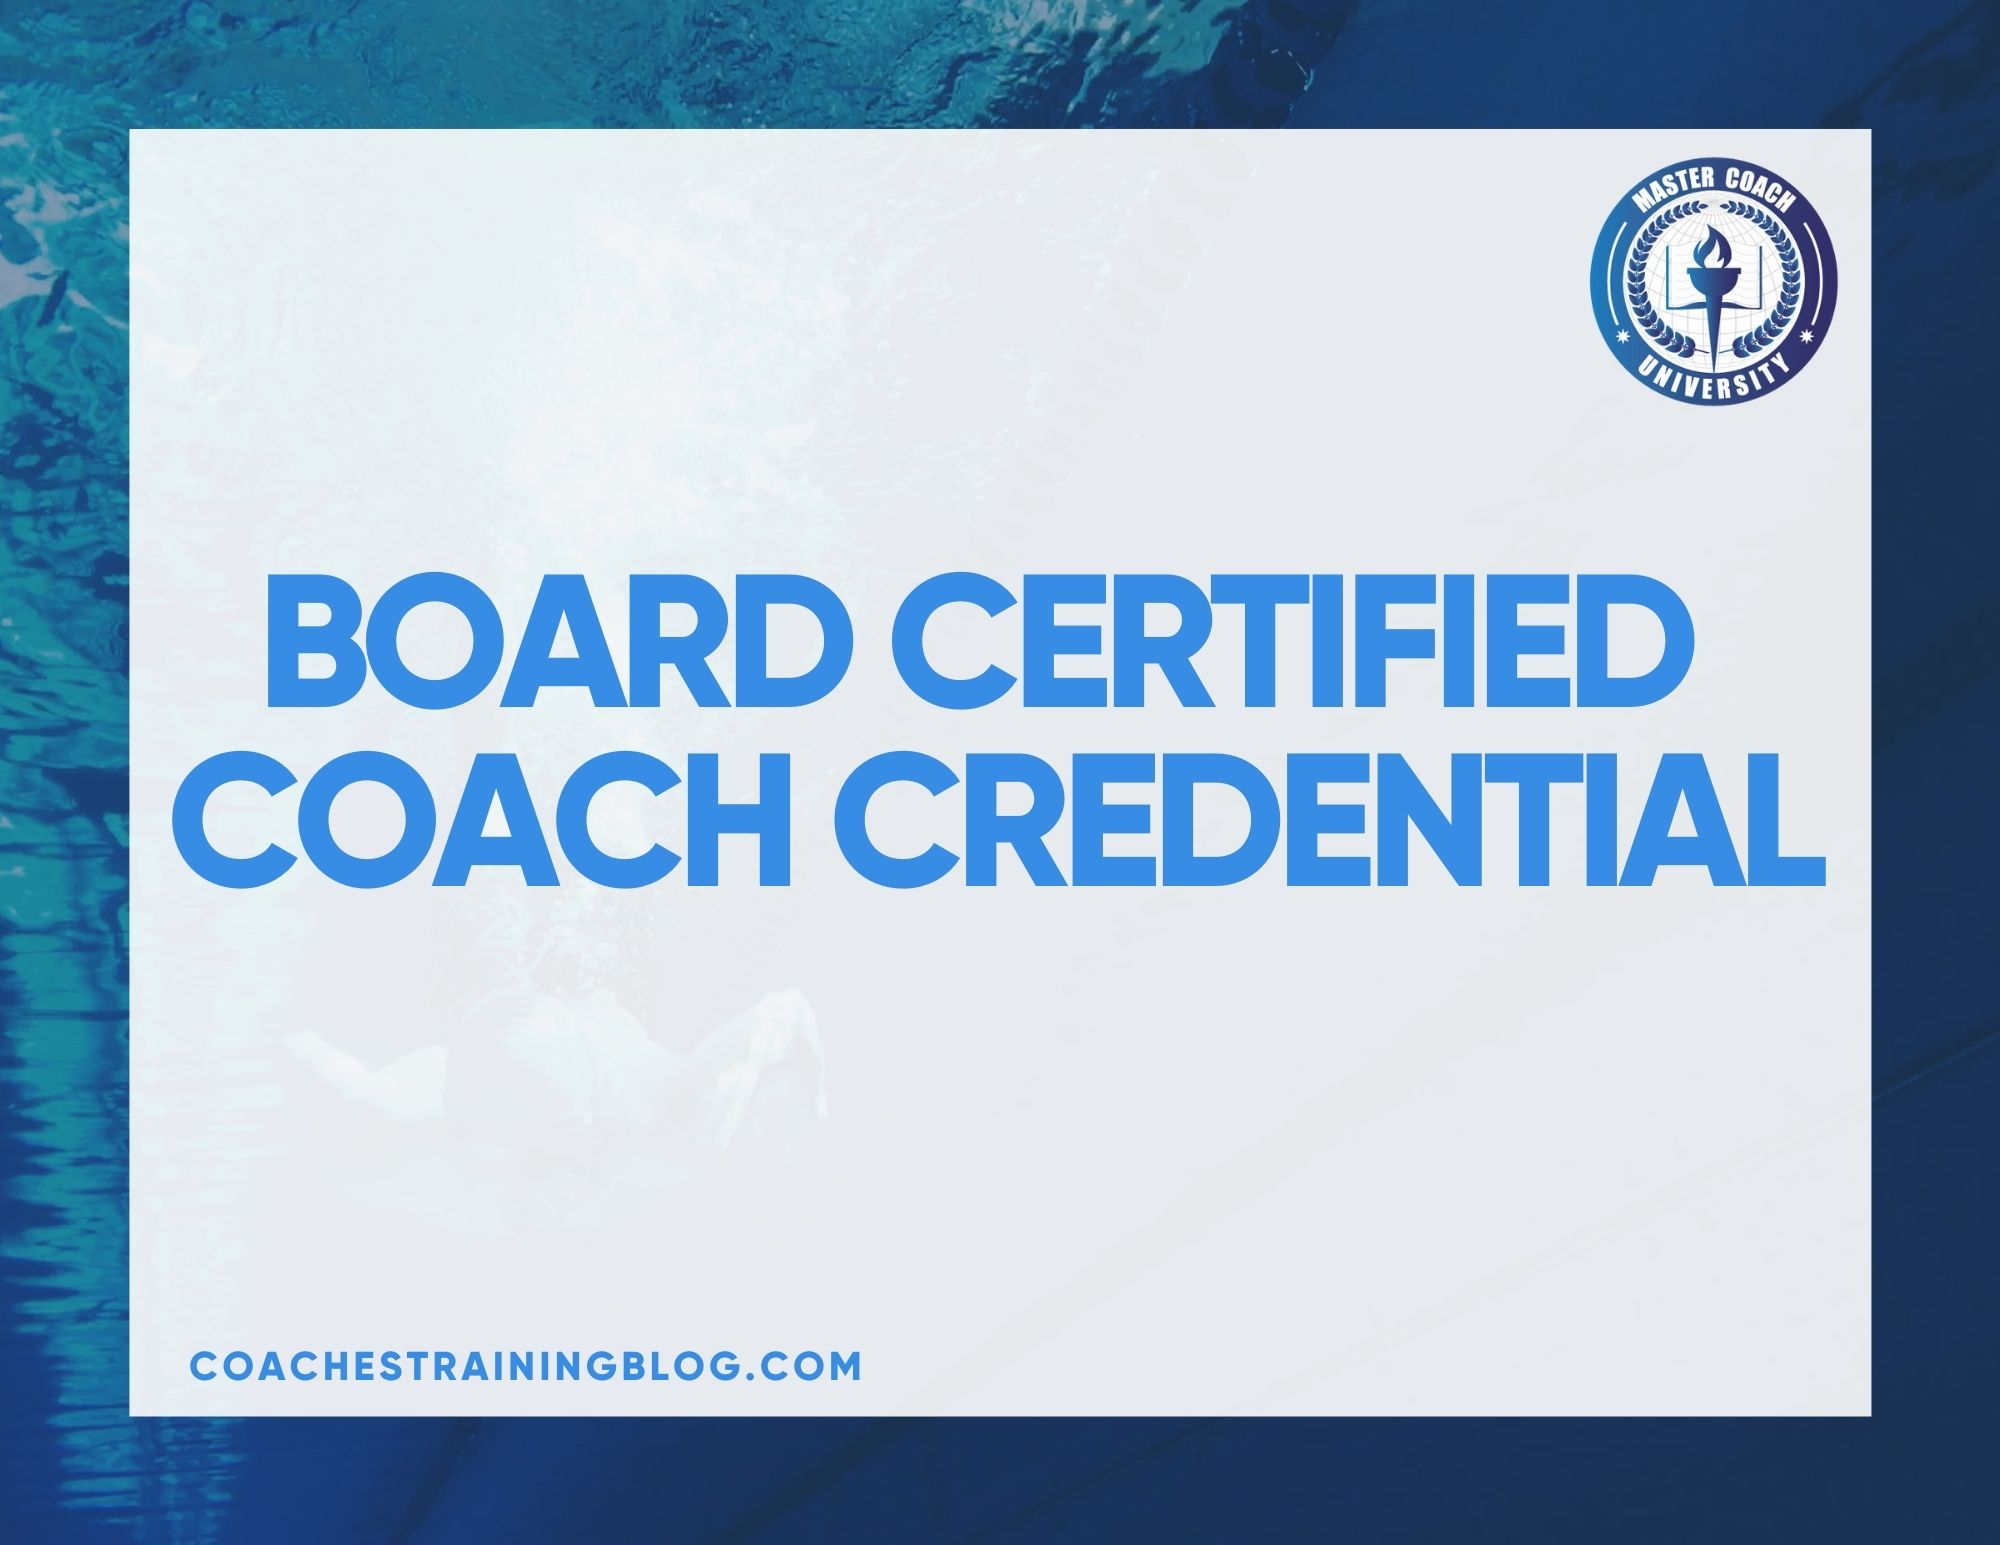 Are You Ready for a Board Certified Coach Credential?